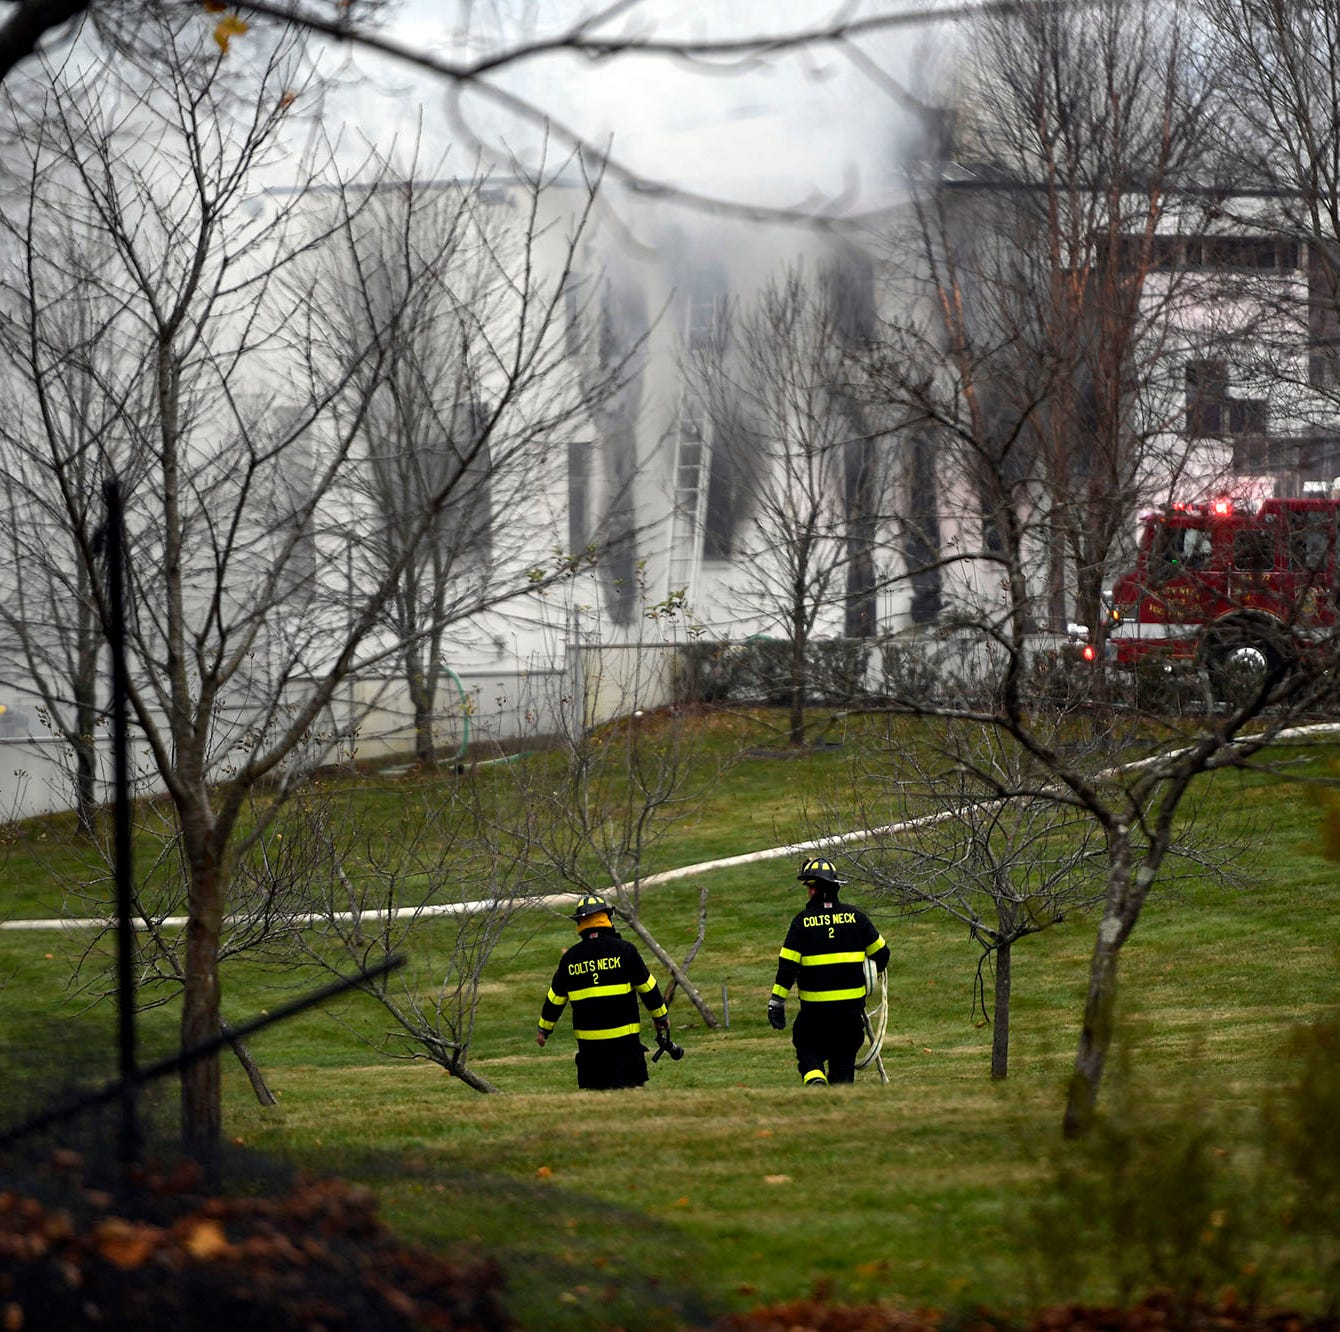 4 people, including 2 children, killed in arson blaze at New Jersey mansion